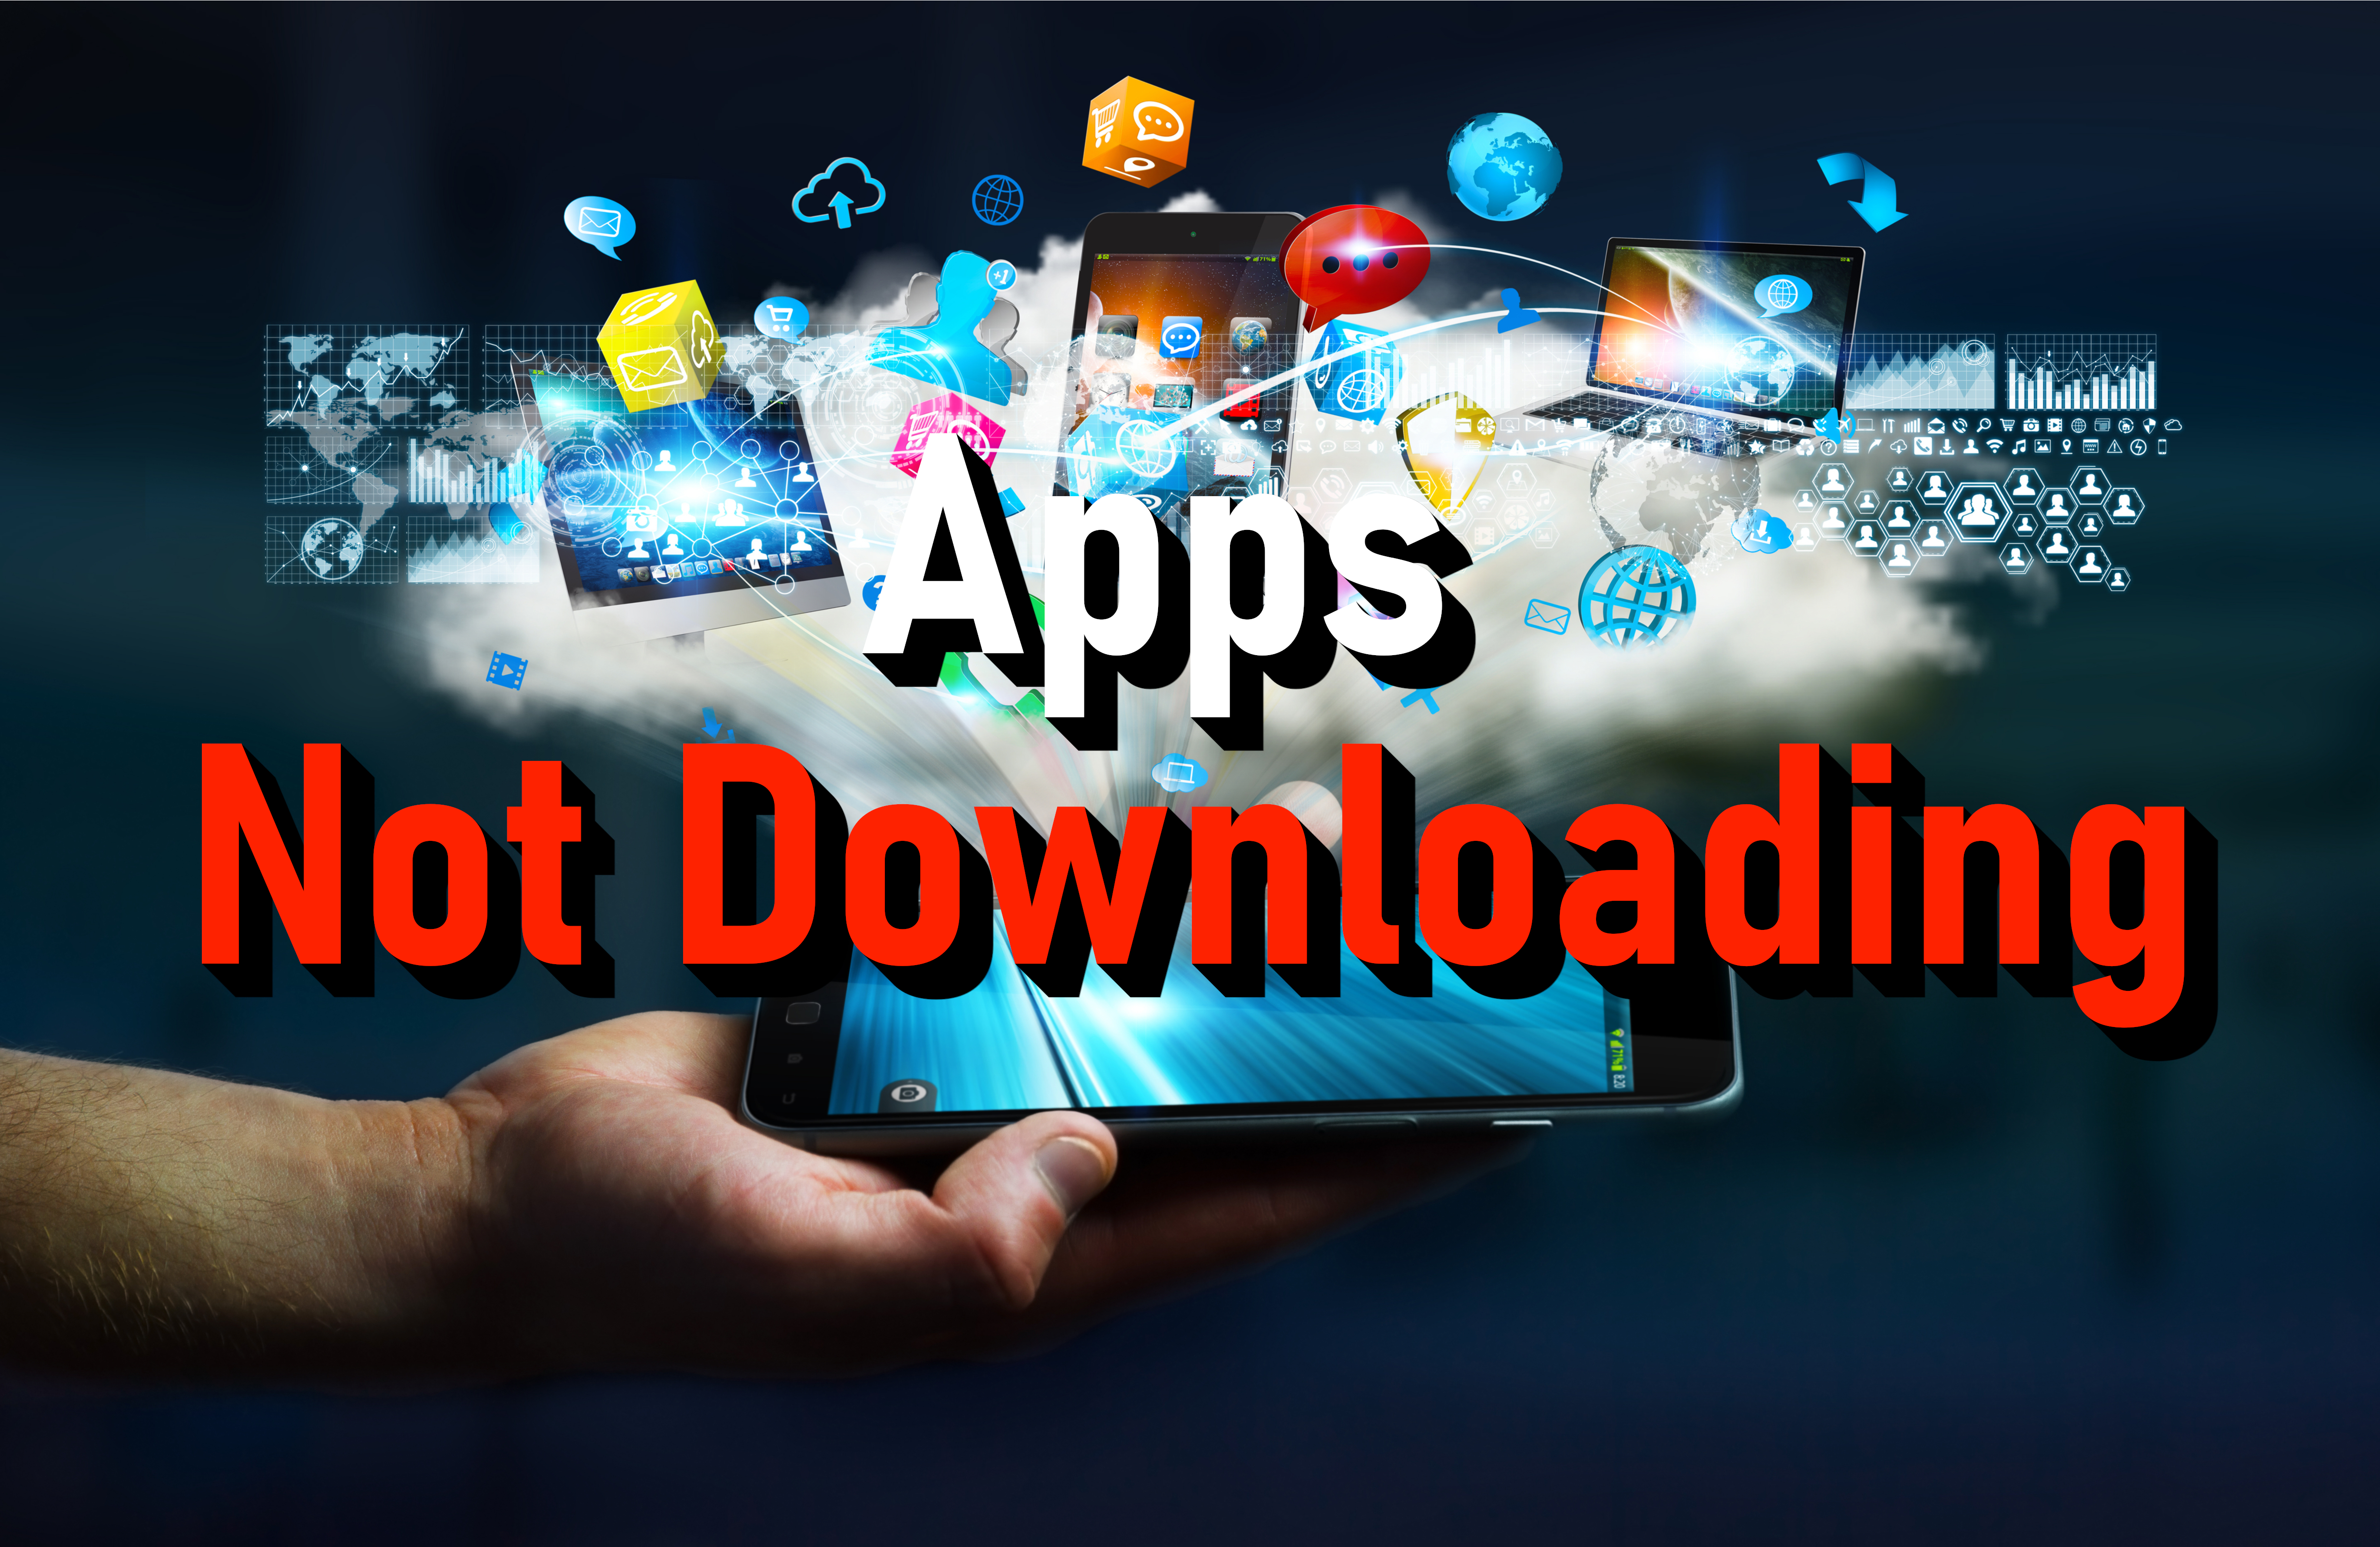 Apps not downloading